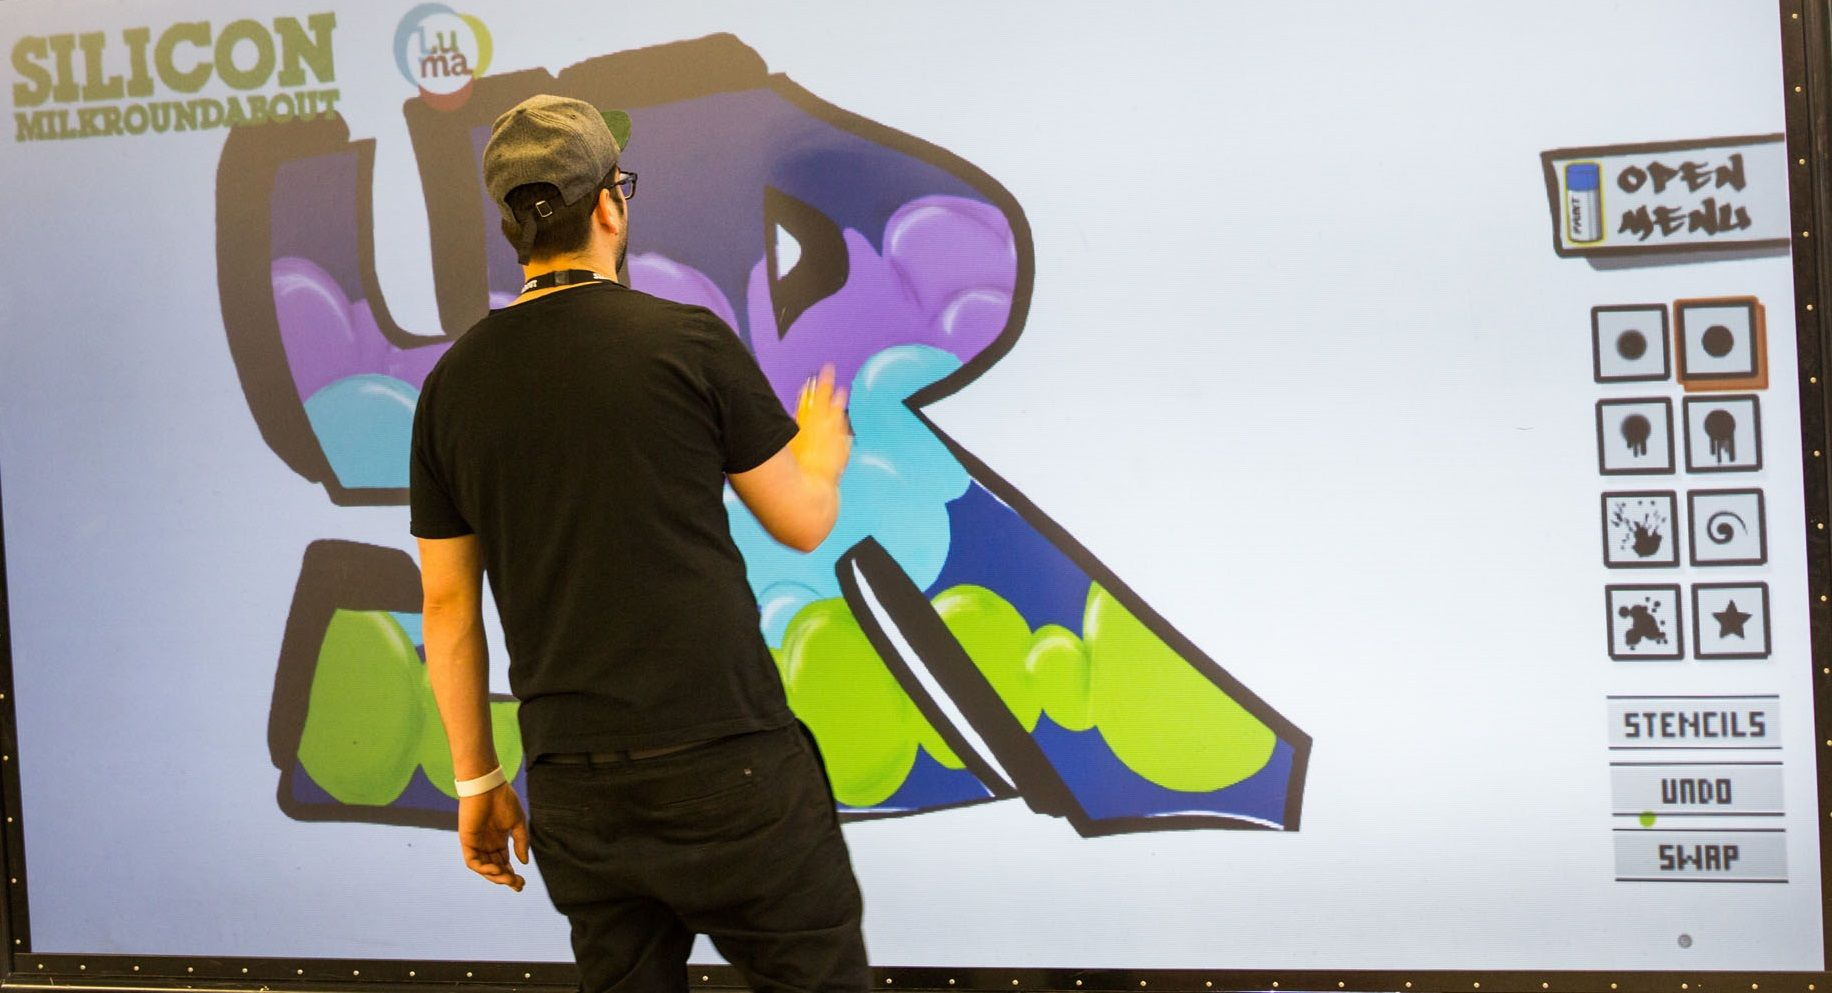 """At #SMR4: Thank you to Luma (http://thisisluma.com) for their amazing YrWall - """"a graffiti experience with a digital twist - giving you the chance to design your own graffiti masterpieces without mess, again and again"""". YrWall was at Silicon Milkroundabout 4.0 and 5.0."""